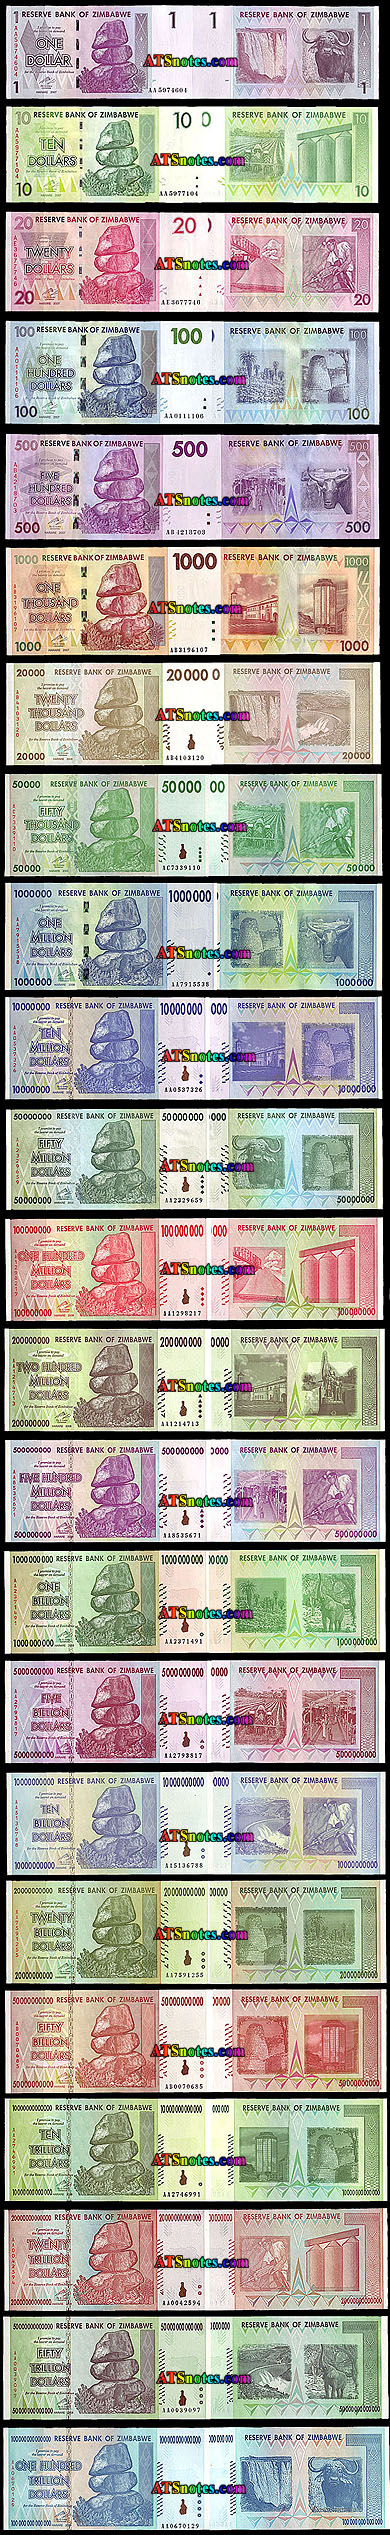 Zimbabwe 500 Trillion Dollar Note Currency Exchange Rates